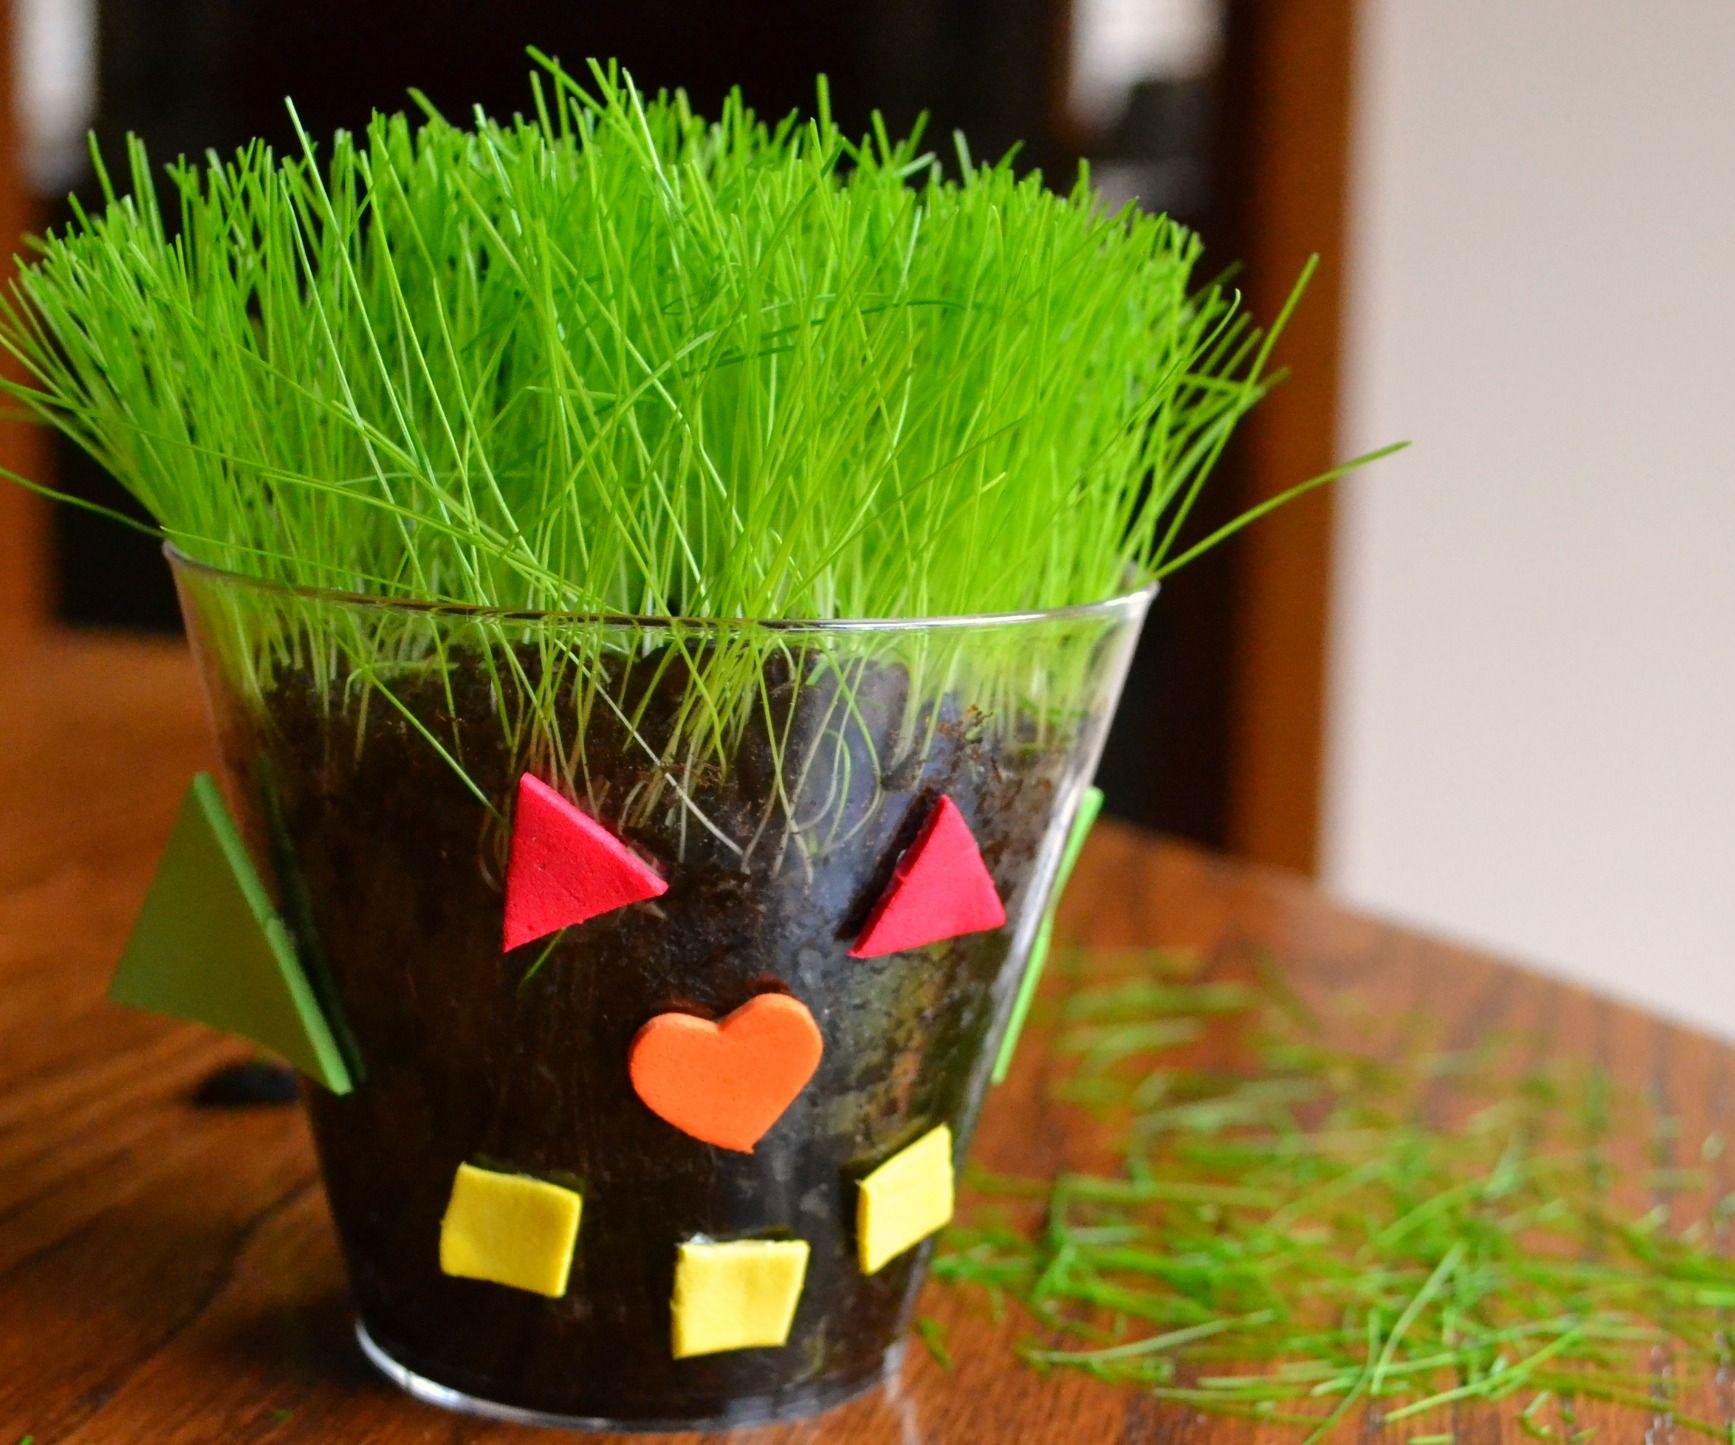 A Cup Of Spring Plant Seeds To Make A Grass Buddy Spring Preschool